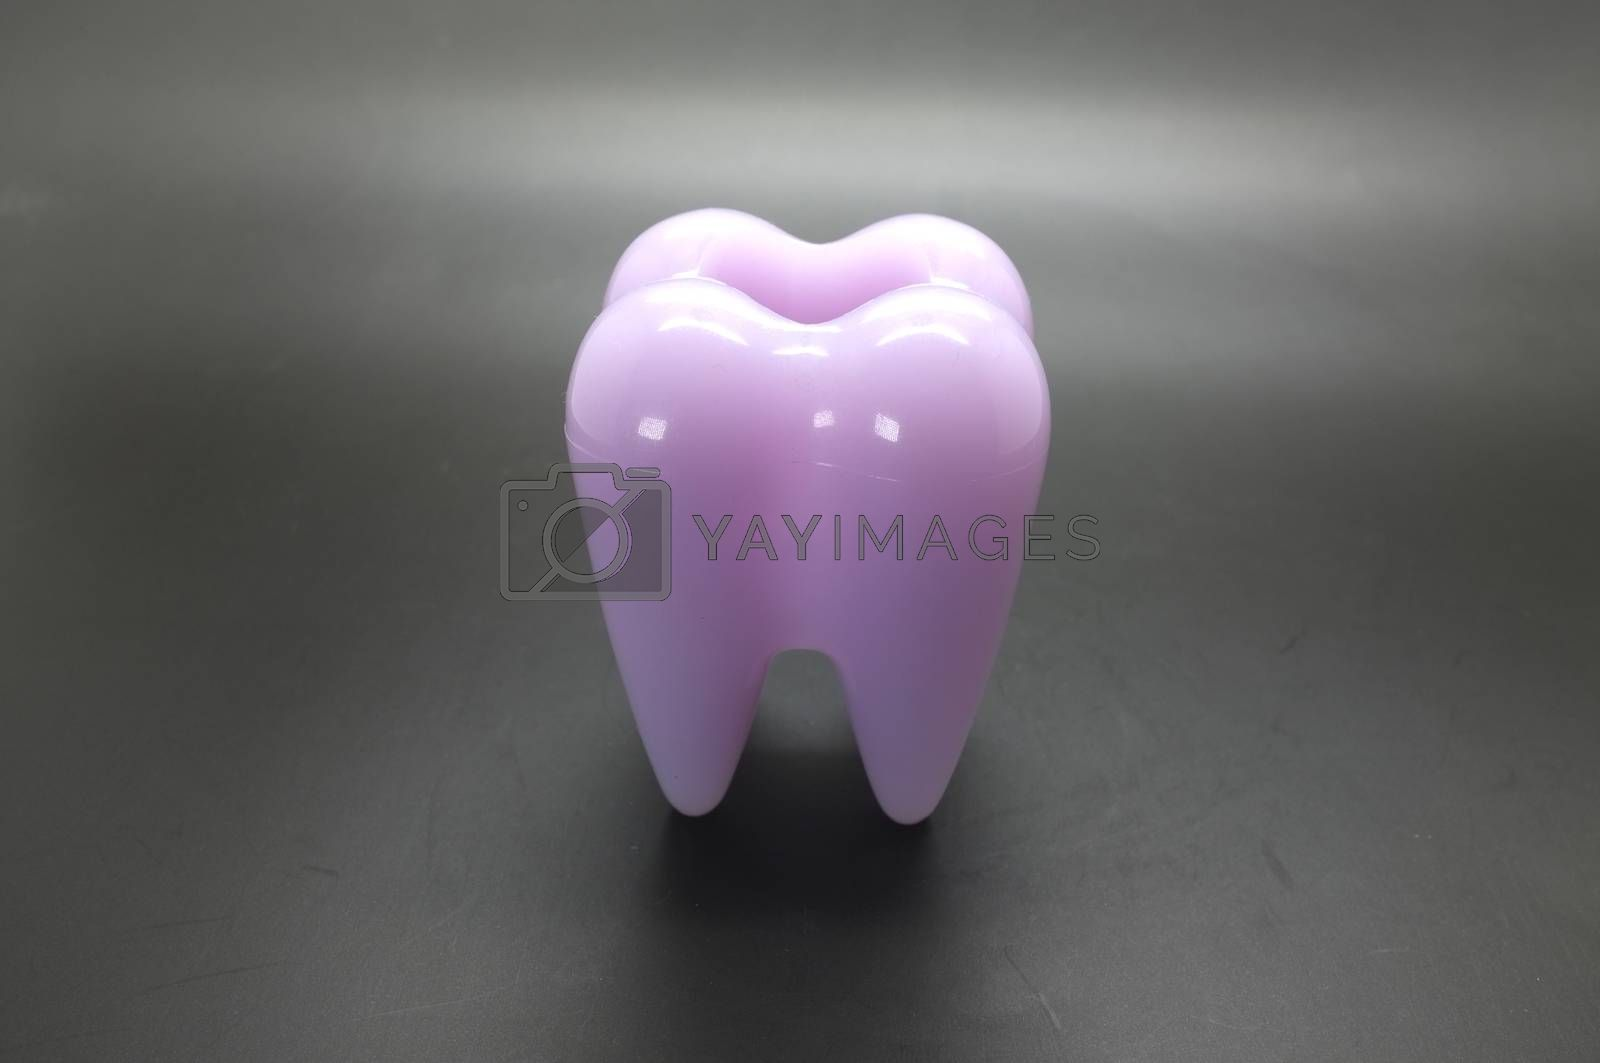 Human tooth model with hole